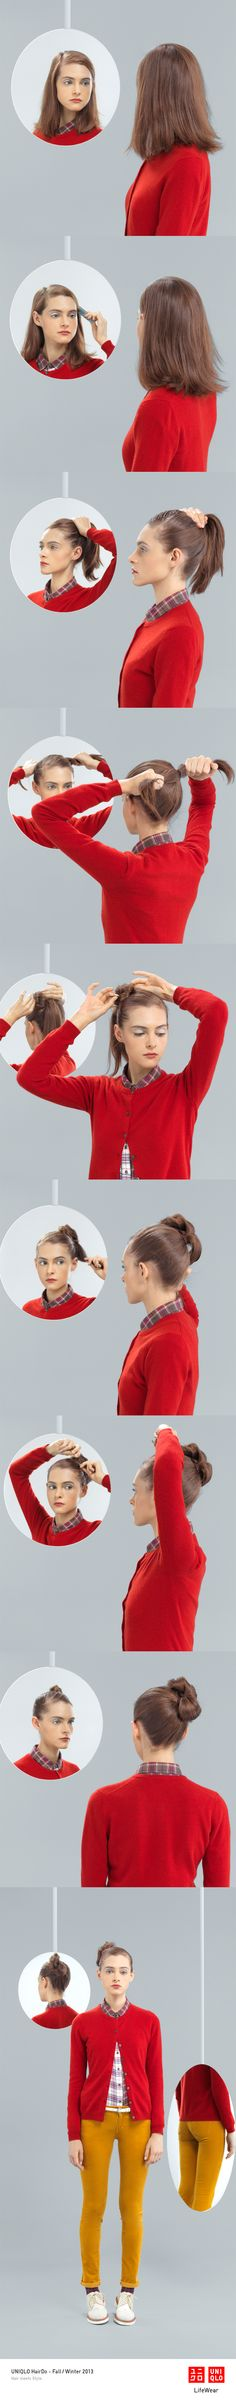 """""""THE KRISTY BOW"""" : This hair style paired with our plaid shirt and cardigan is great for a day outside.   Click the image for DIY instructions! #UpDo #Hair #Hairstyle #DIY #UNIQLO"""